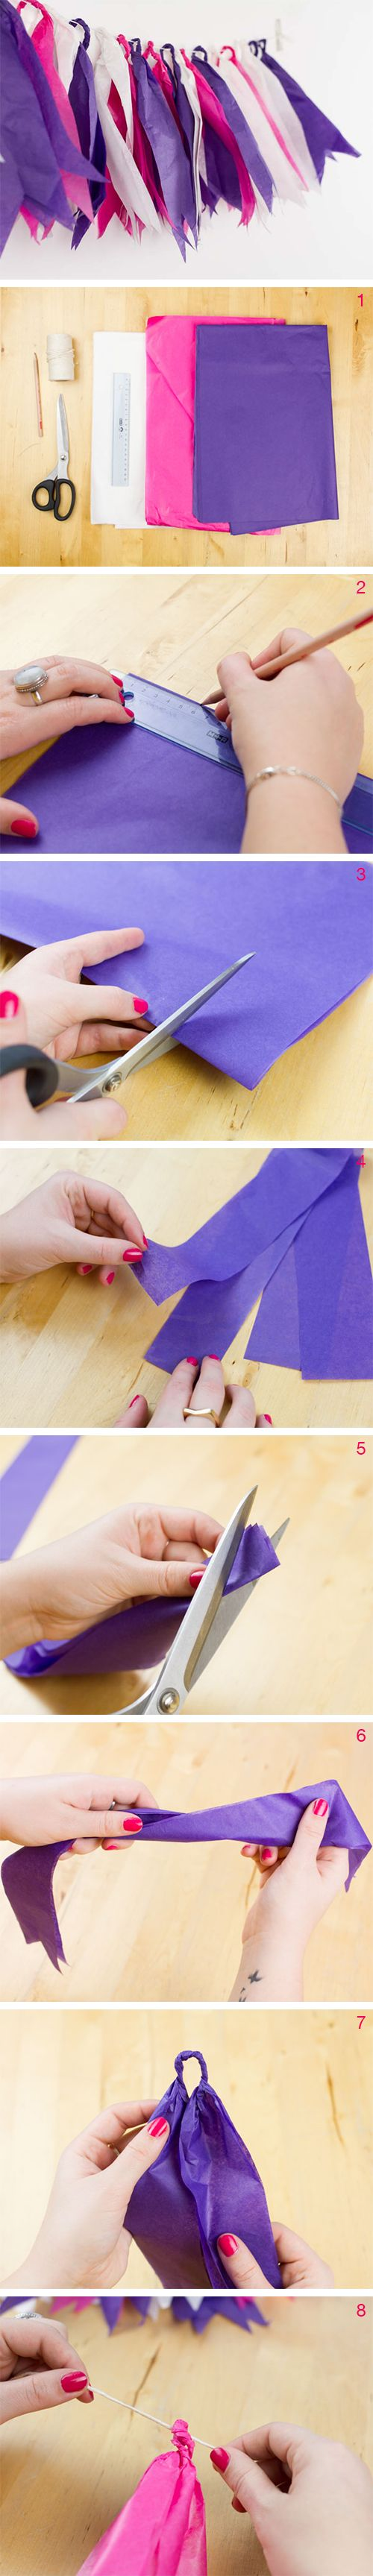 DIY kostenlose Anleitung: Seidenpapier-Girlande, Party Deko, Feste feiern // DIY free tutorial: wrapping tissue garland, party decoration via DaWanda.com